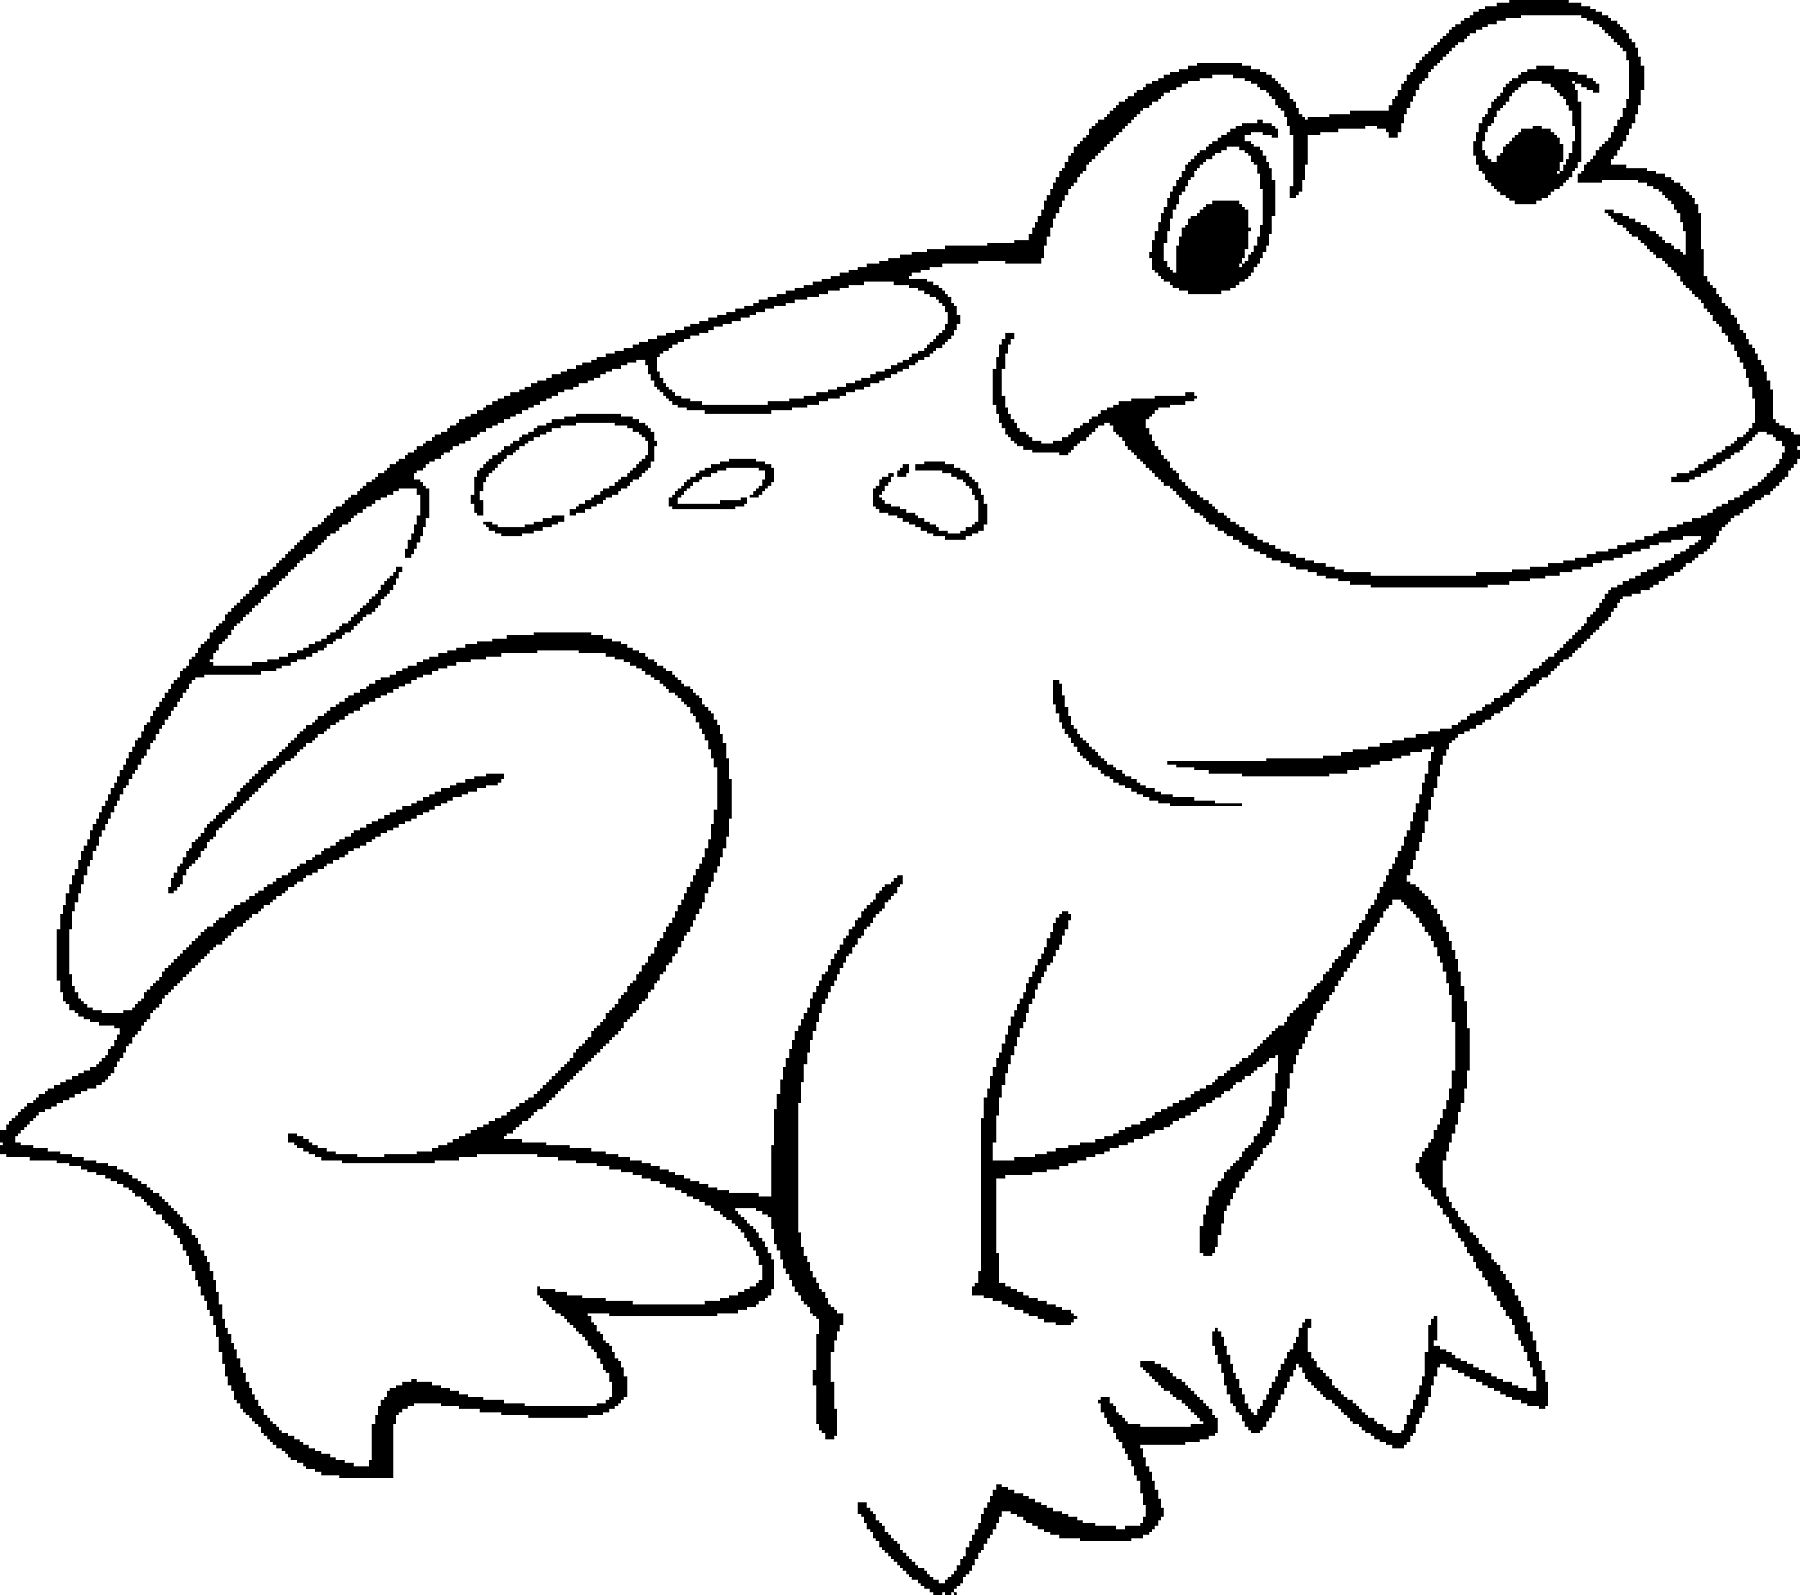 1800x1595 frog color sheet for kids kiddo shelter - Frog Coloring Sheets